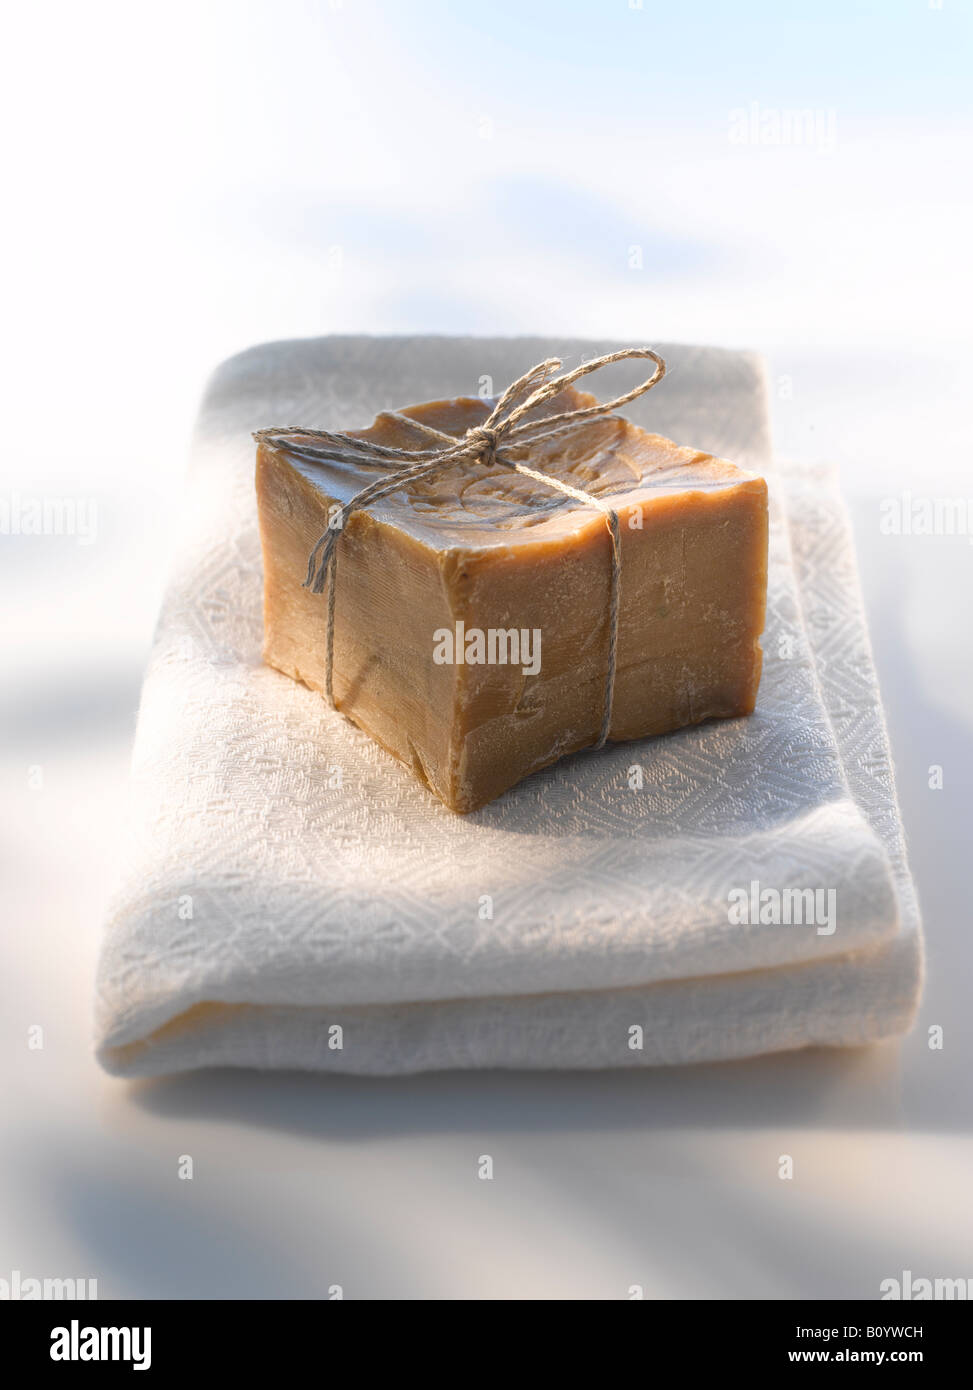 Olive soap on towel, close up - Stock Image